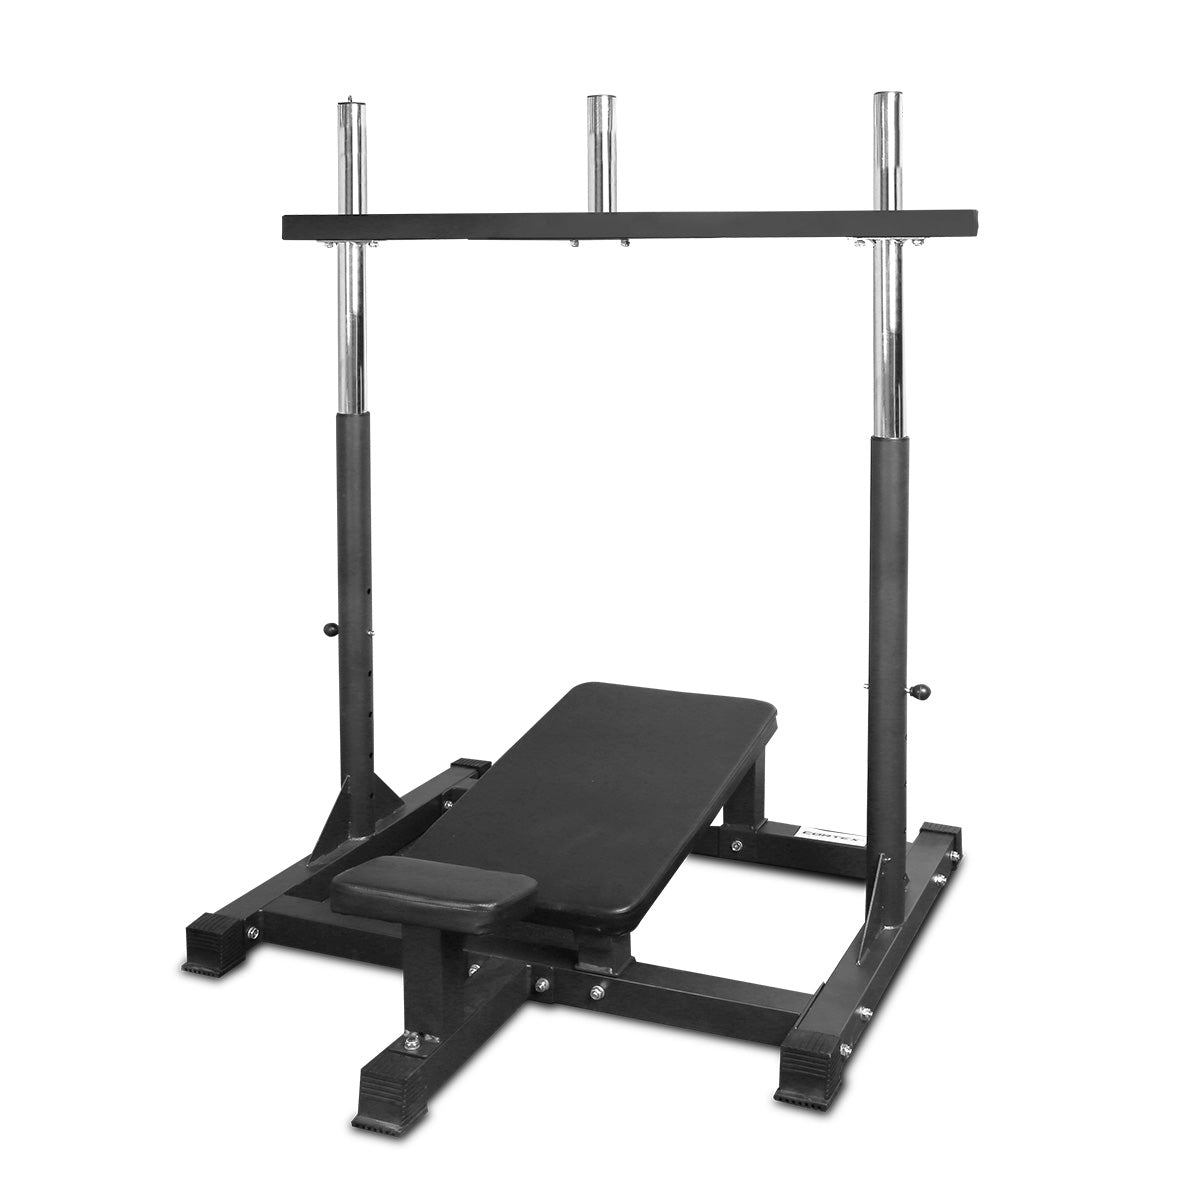 LP1 Leg Press Pre-Order now ships in 10 weeks.